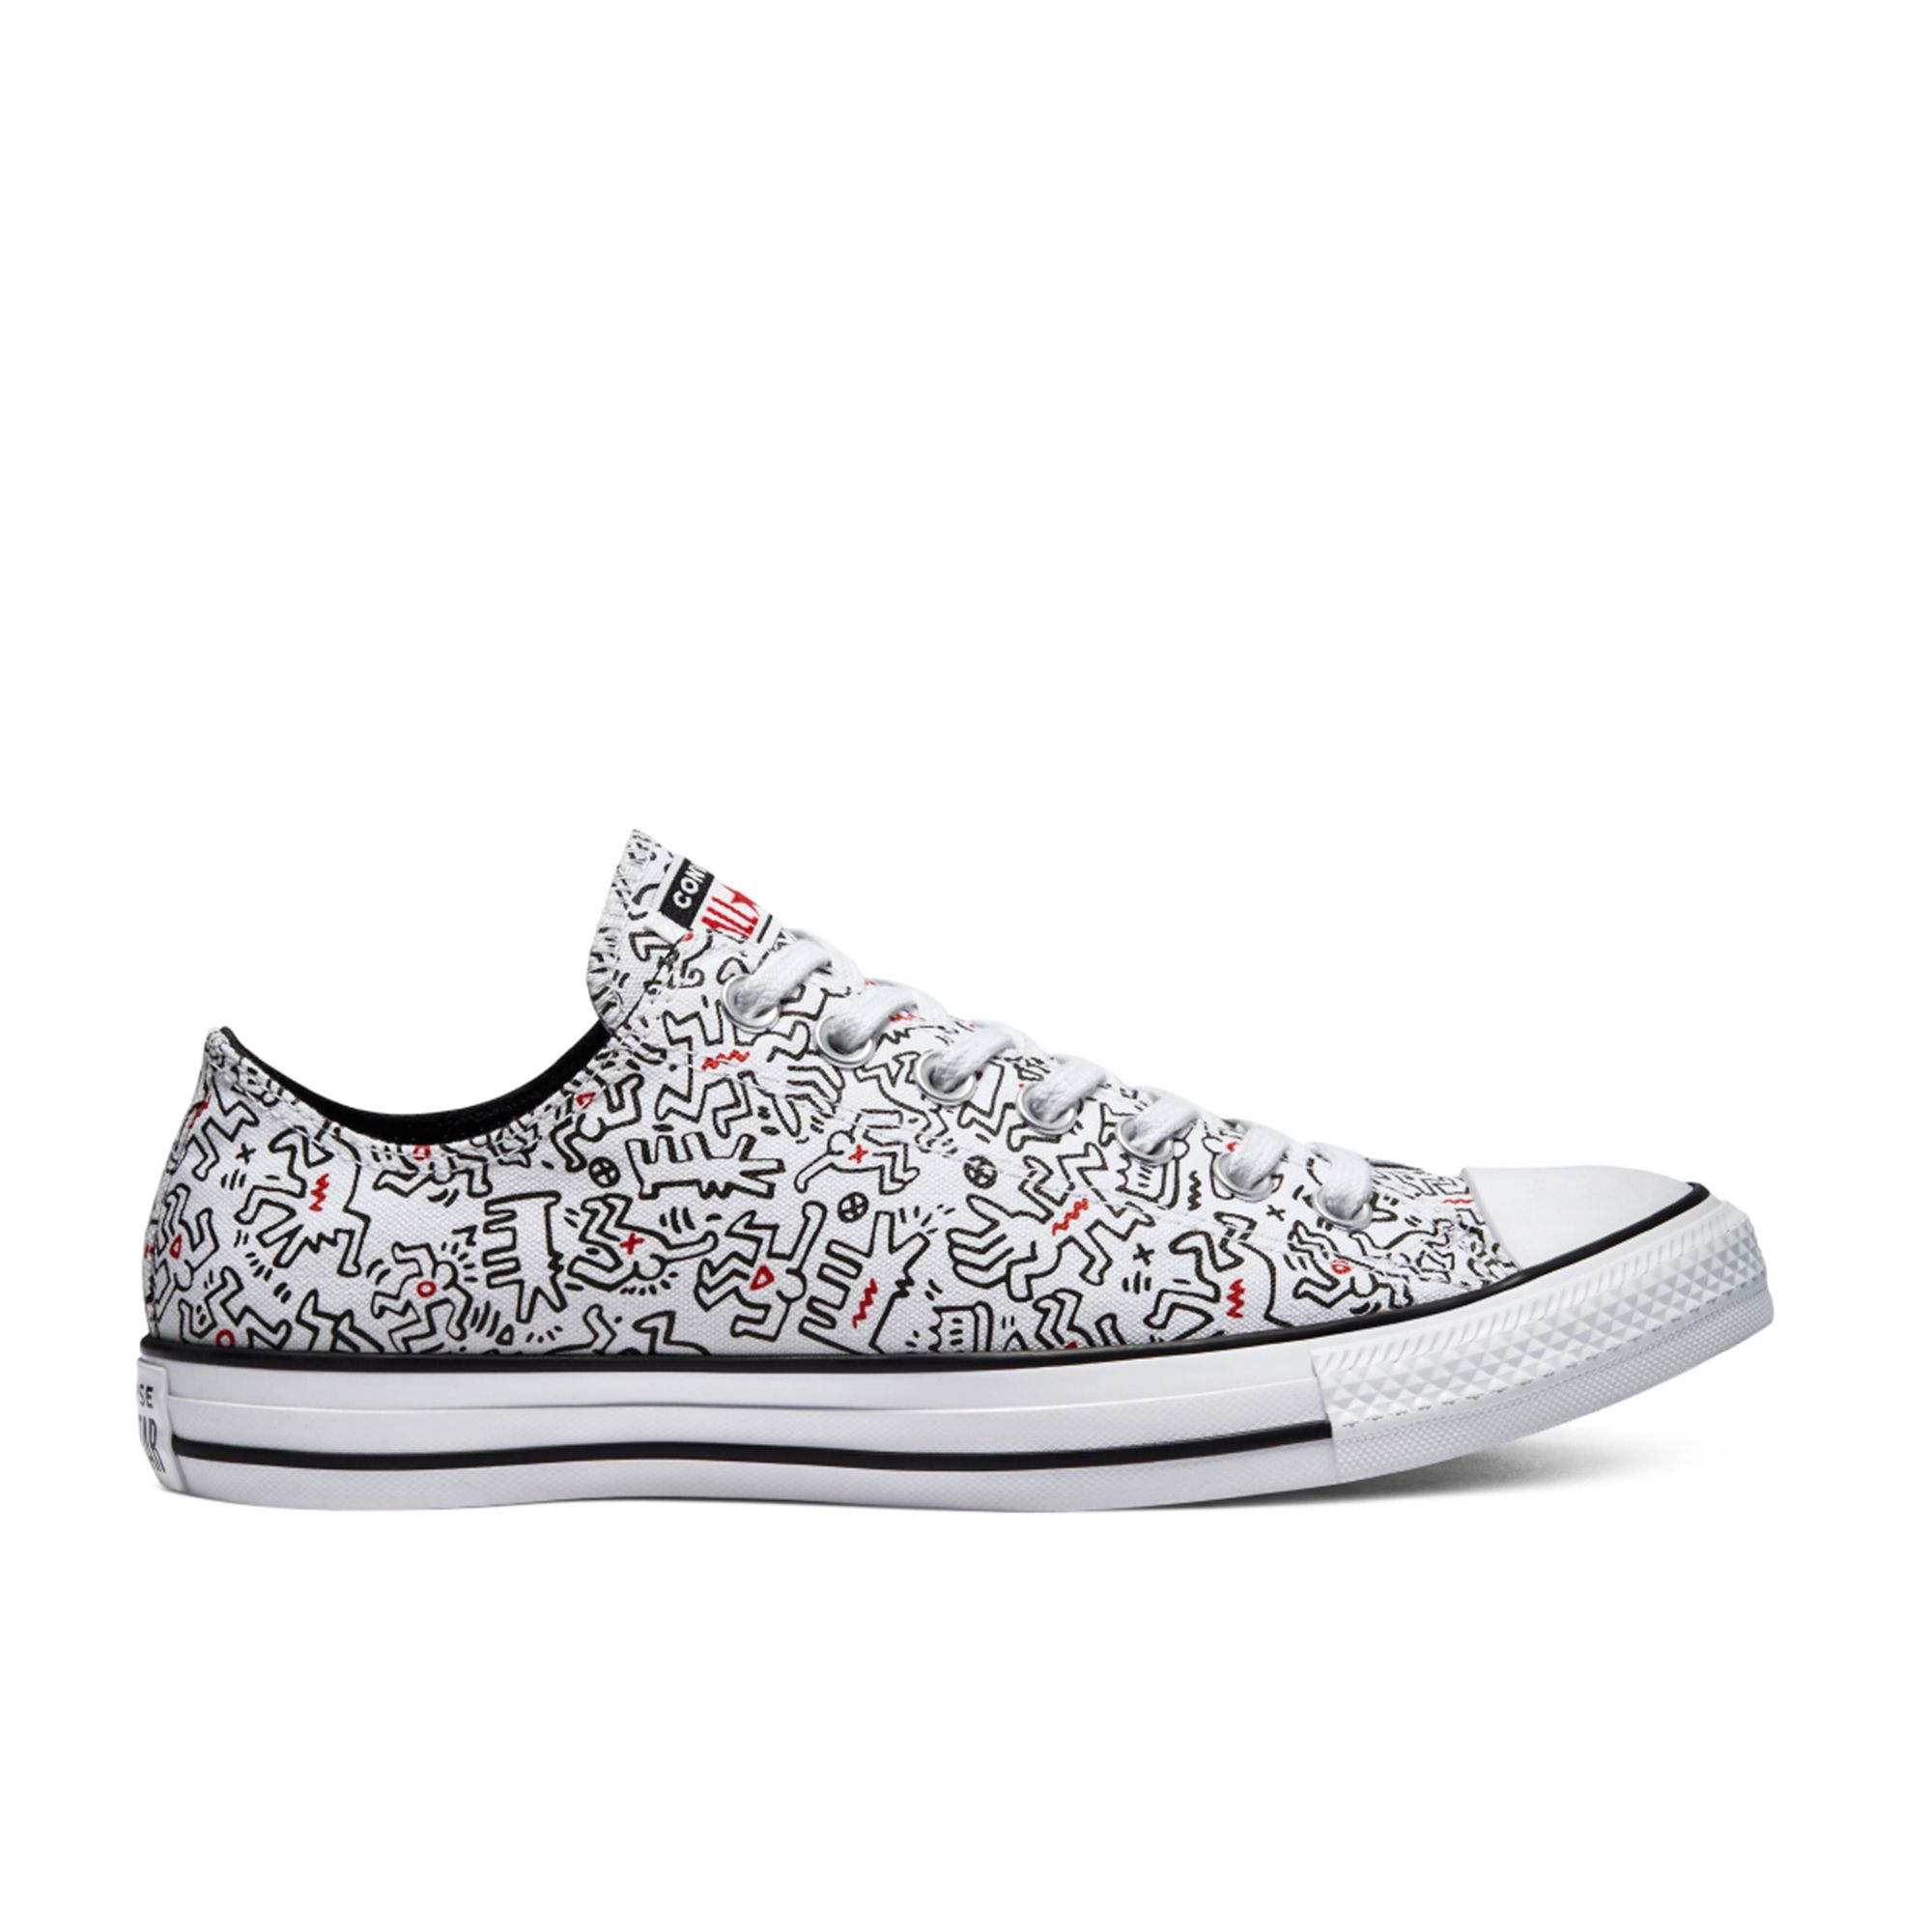 Converse Keith Haring Low Top